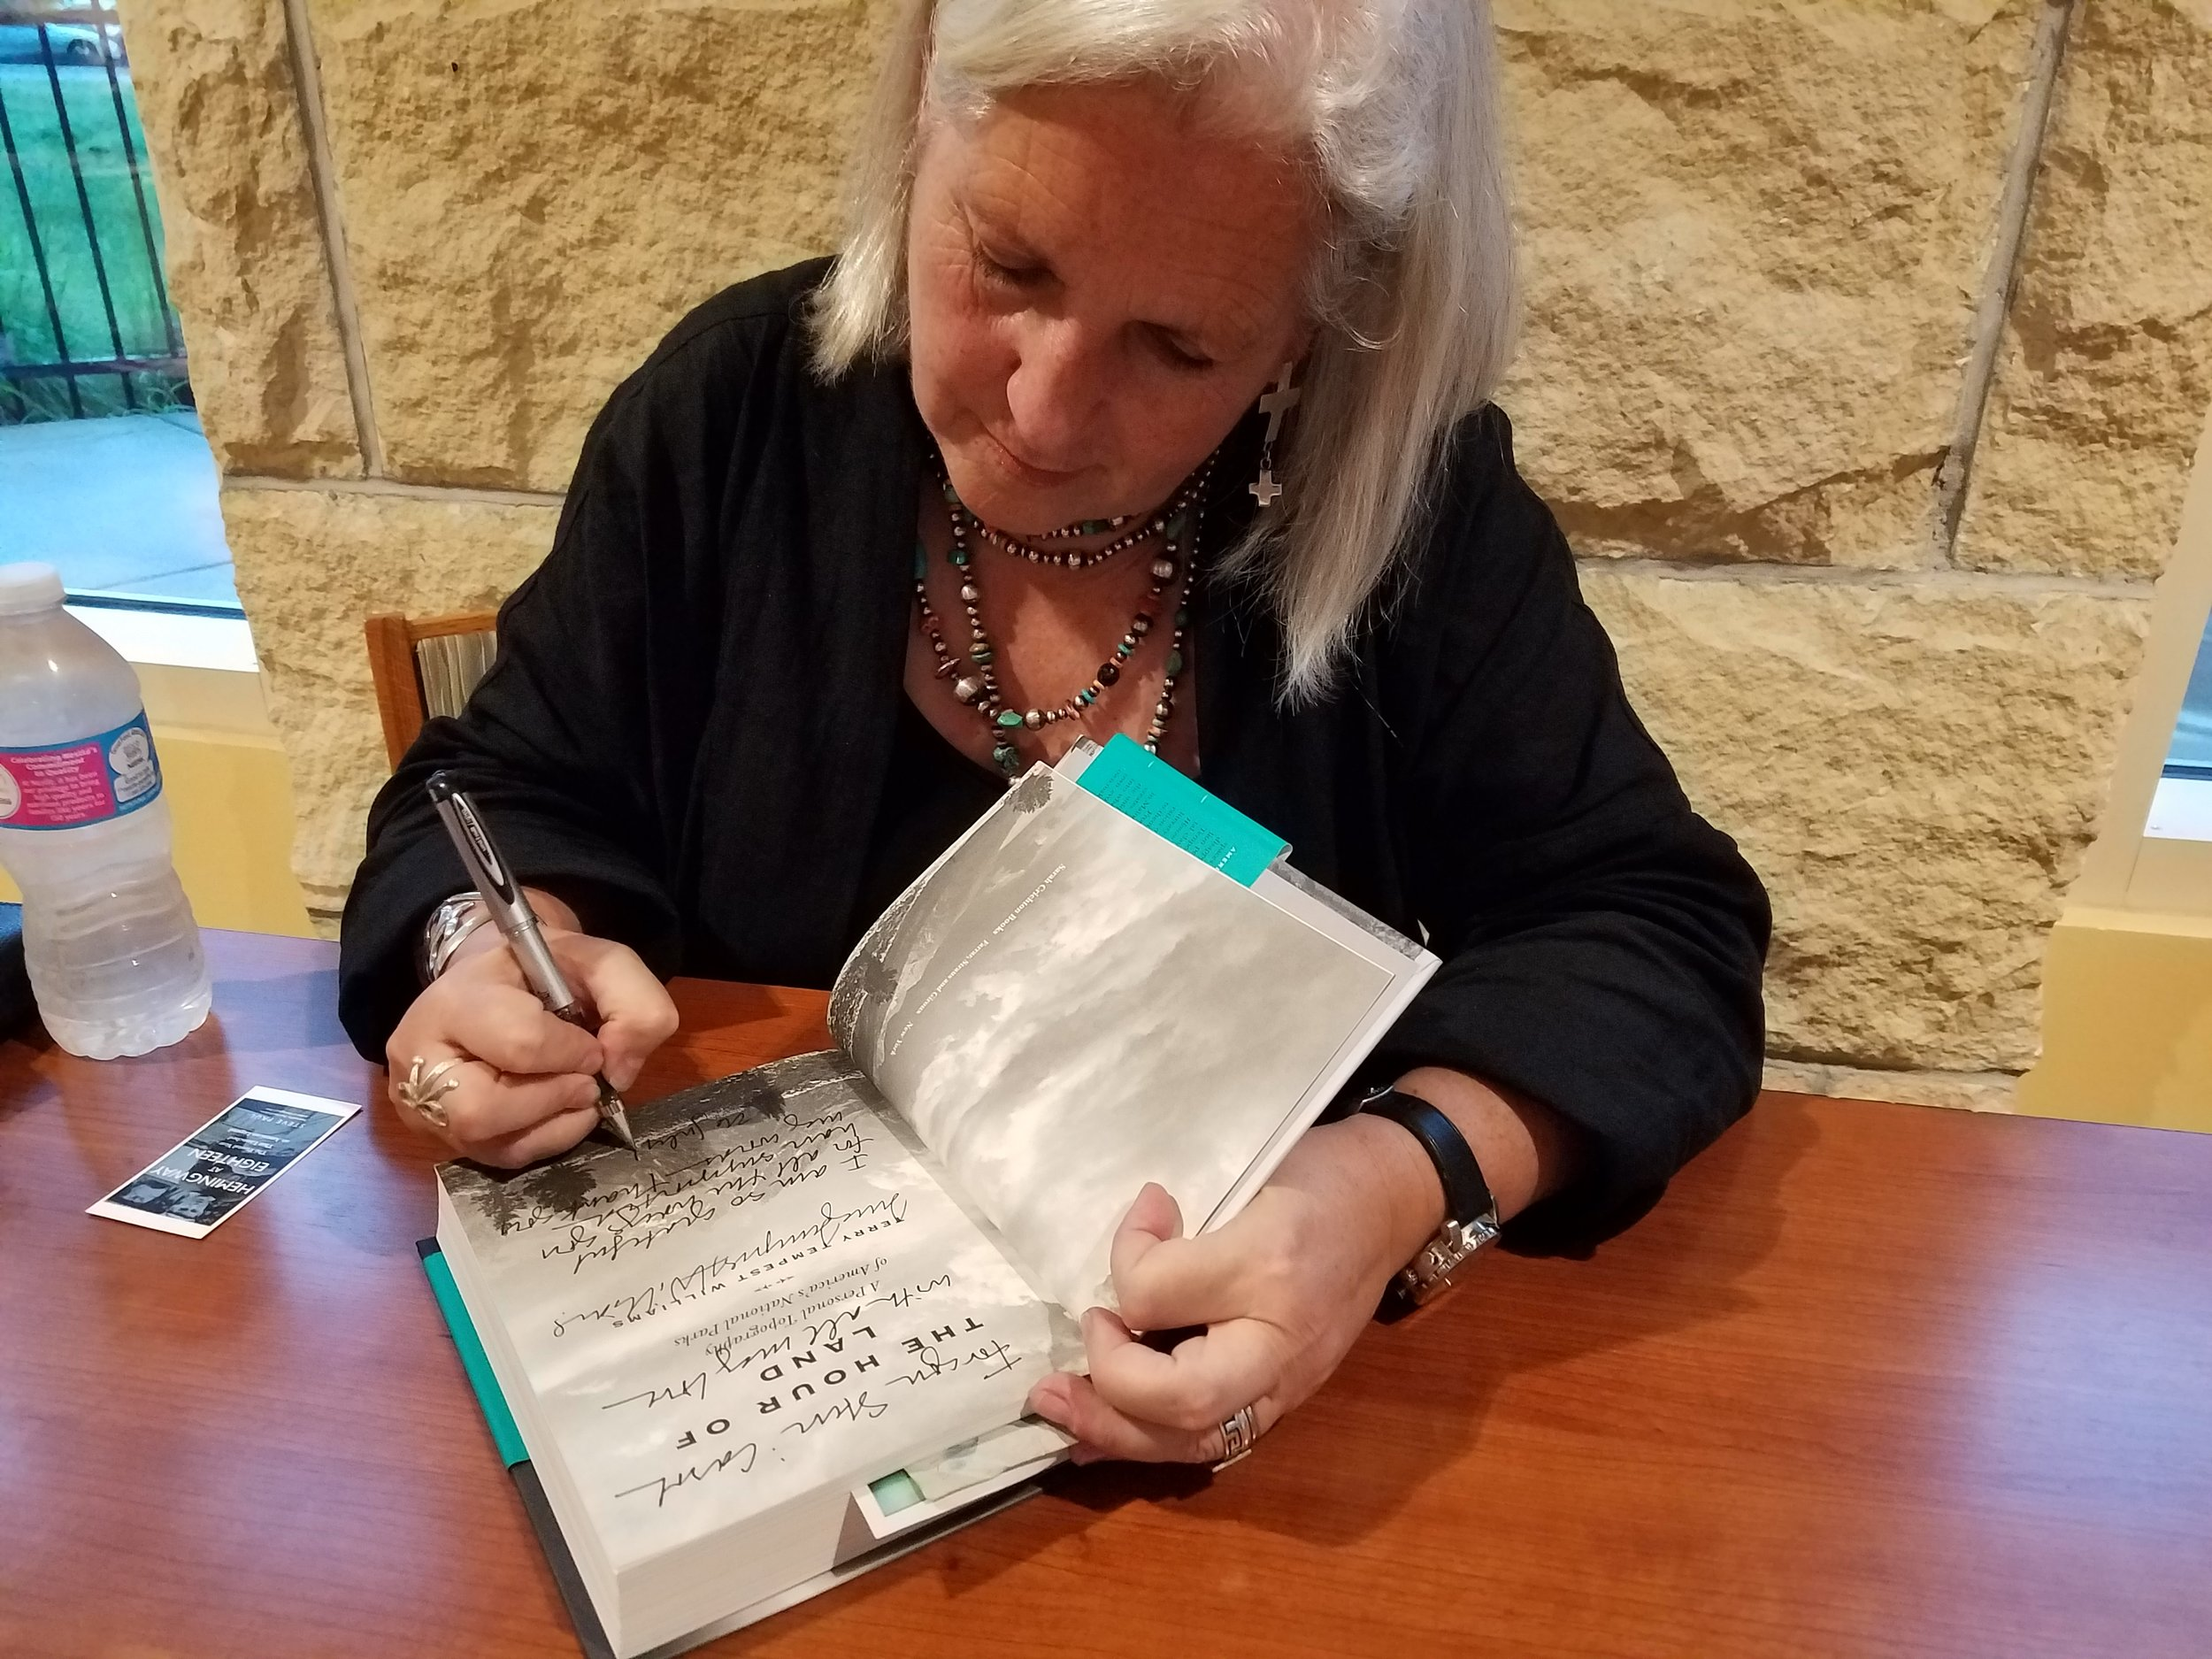 Terry Tempest Williams personalizes a copy of her latest book,  The Hour of Land  after her talk at the Woodneath Library in Kansas City.